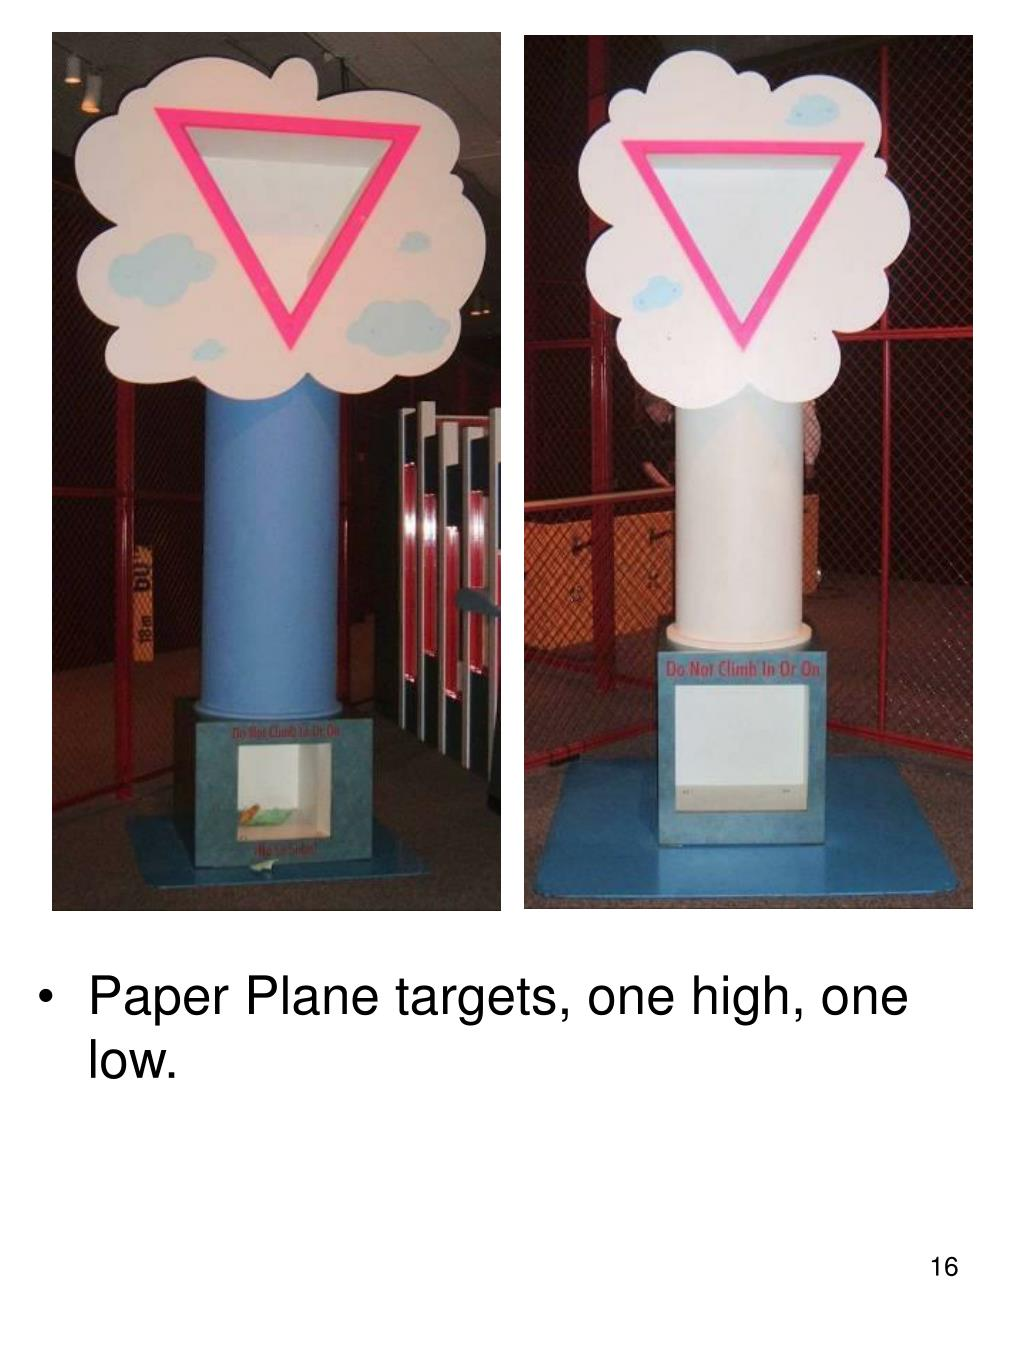 Paper Plane targets, one high, one low.